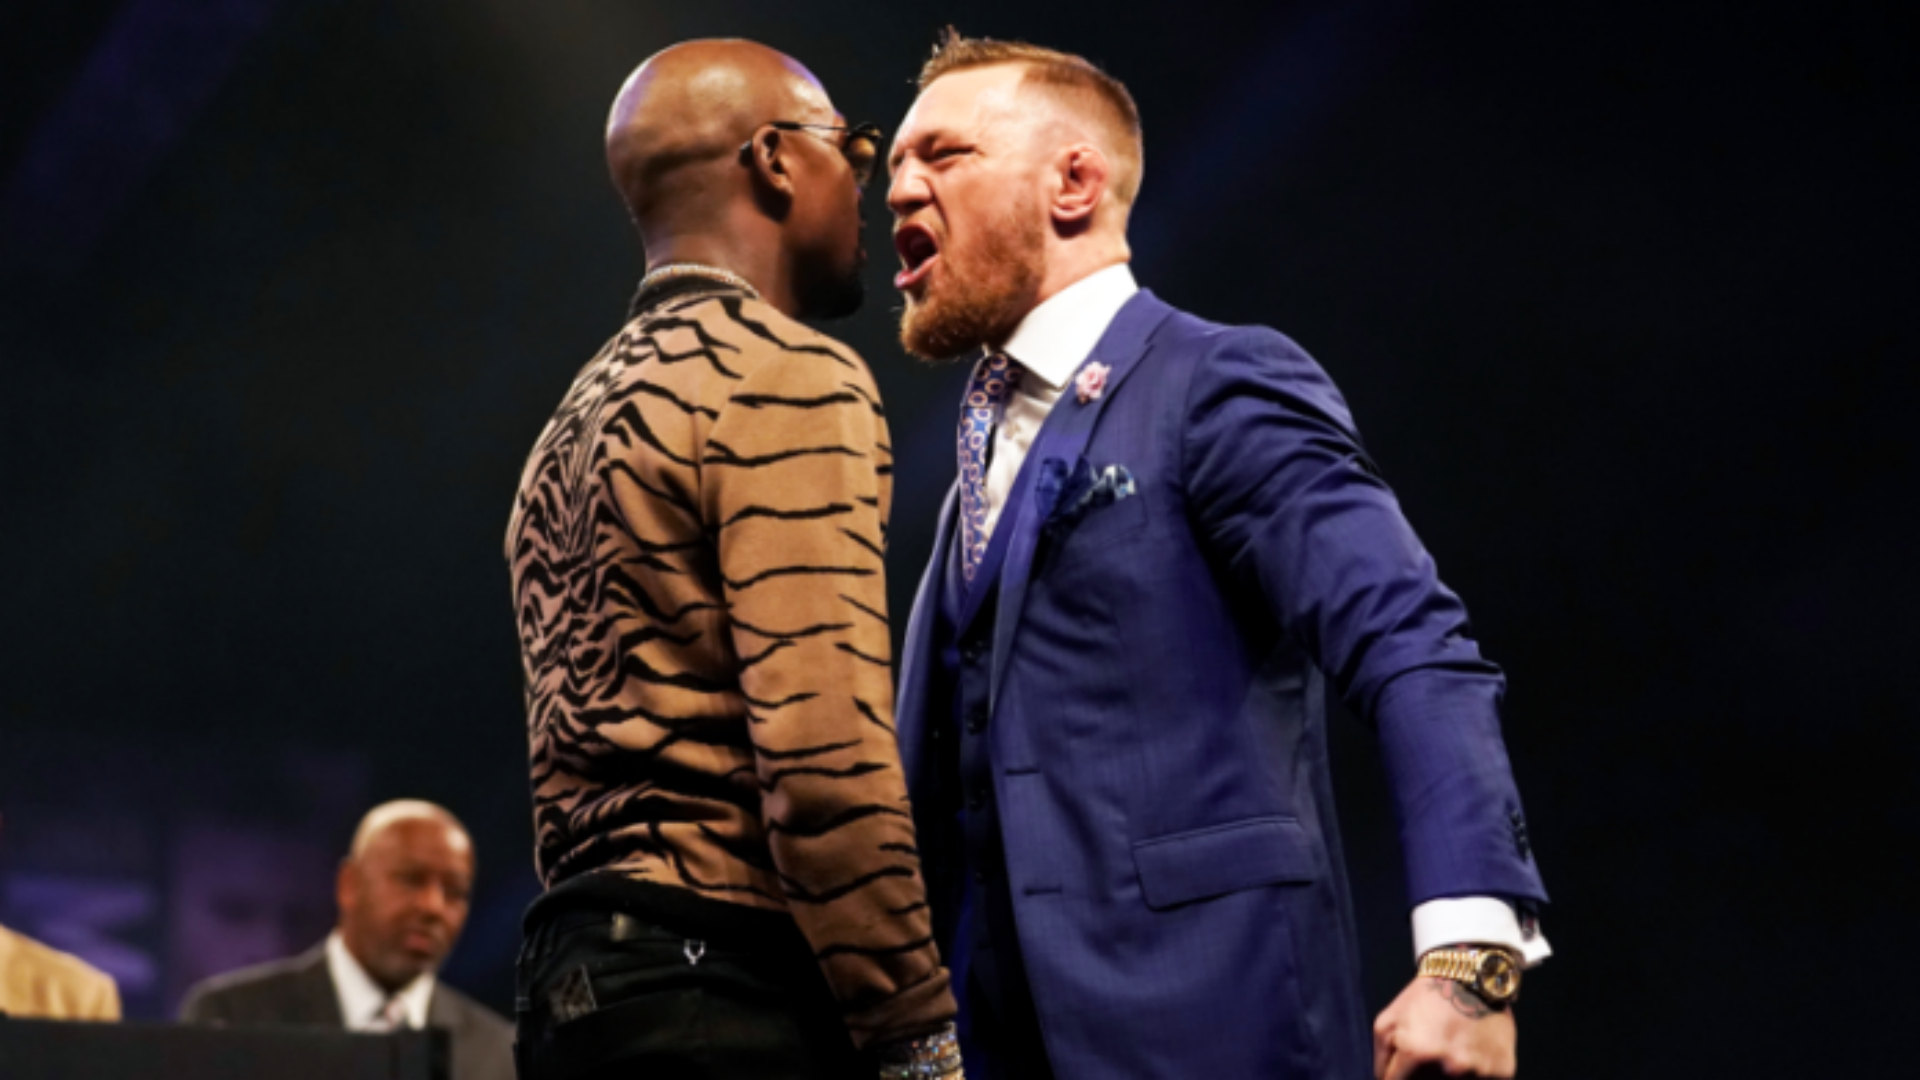 Ticket sales for Mayweather vs. McGregor off to slow start